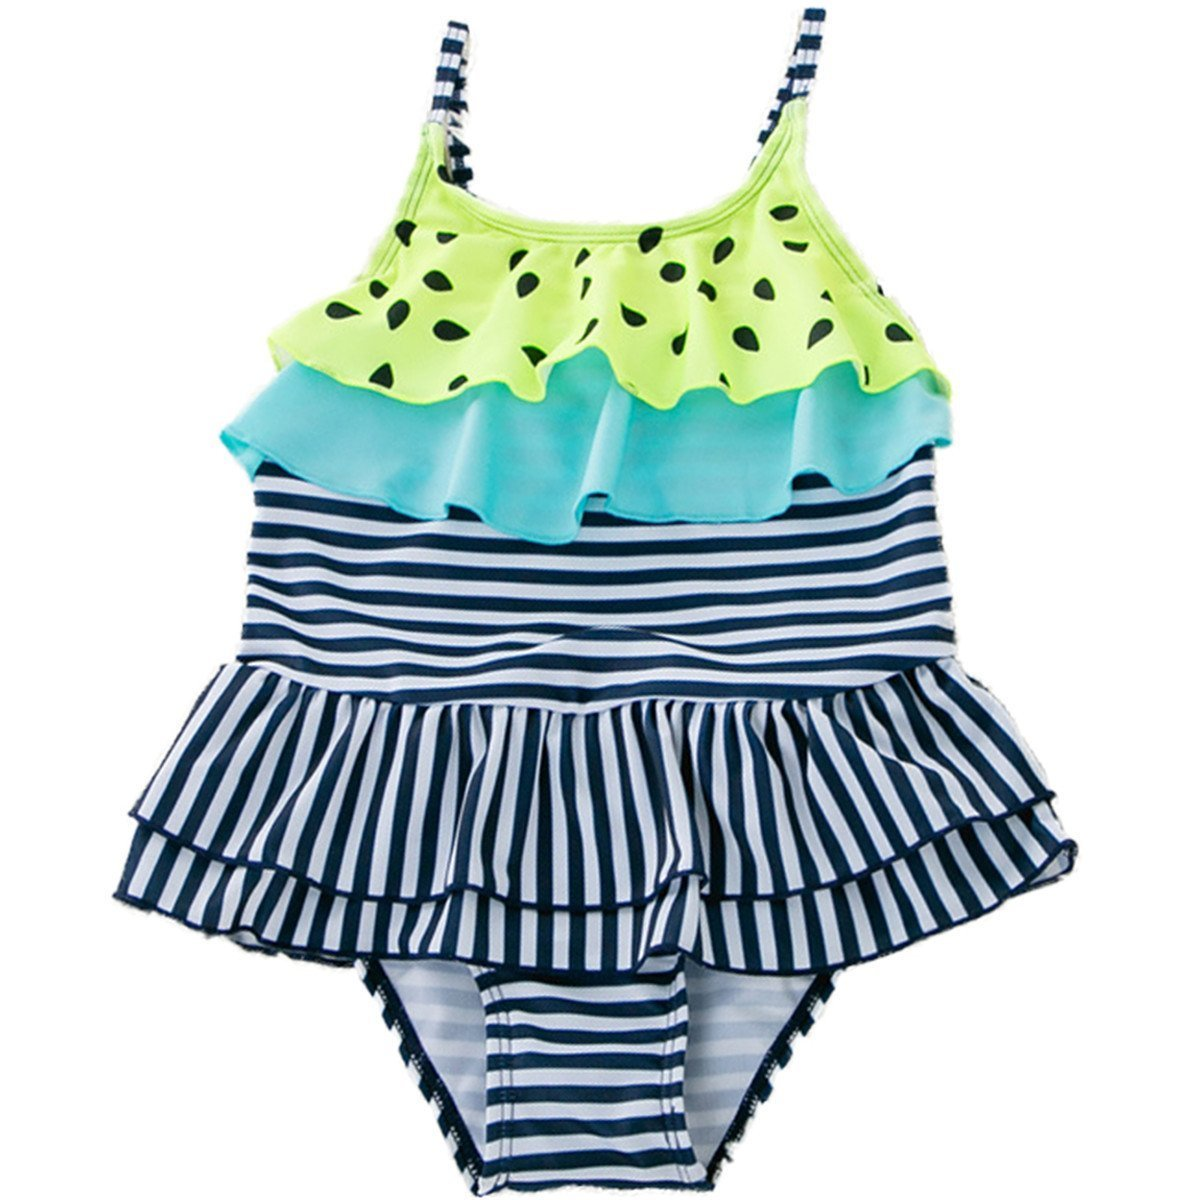 Maylife Baby Kids Girls One Pieces Sleeveless Swimwear Stripe Ruffle Skirt Shoulder Swimsuit